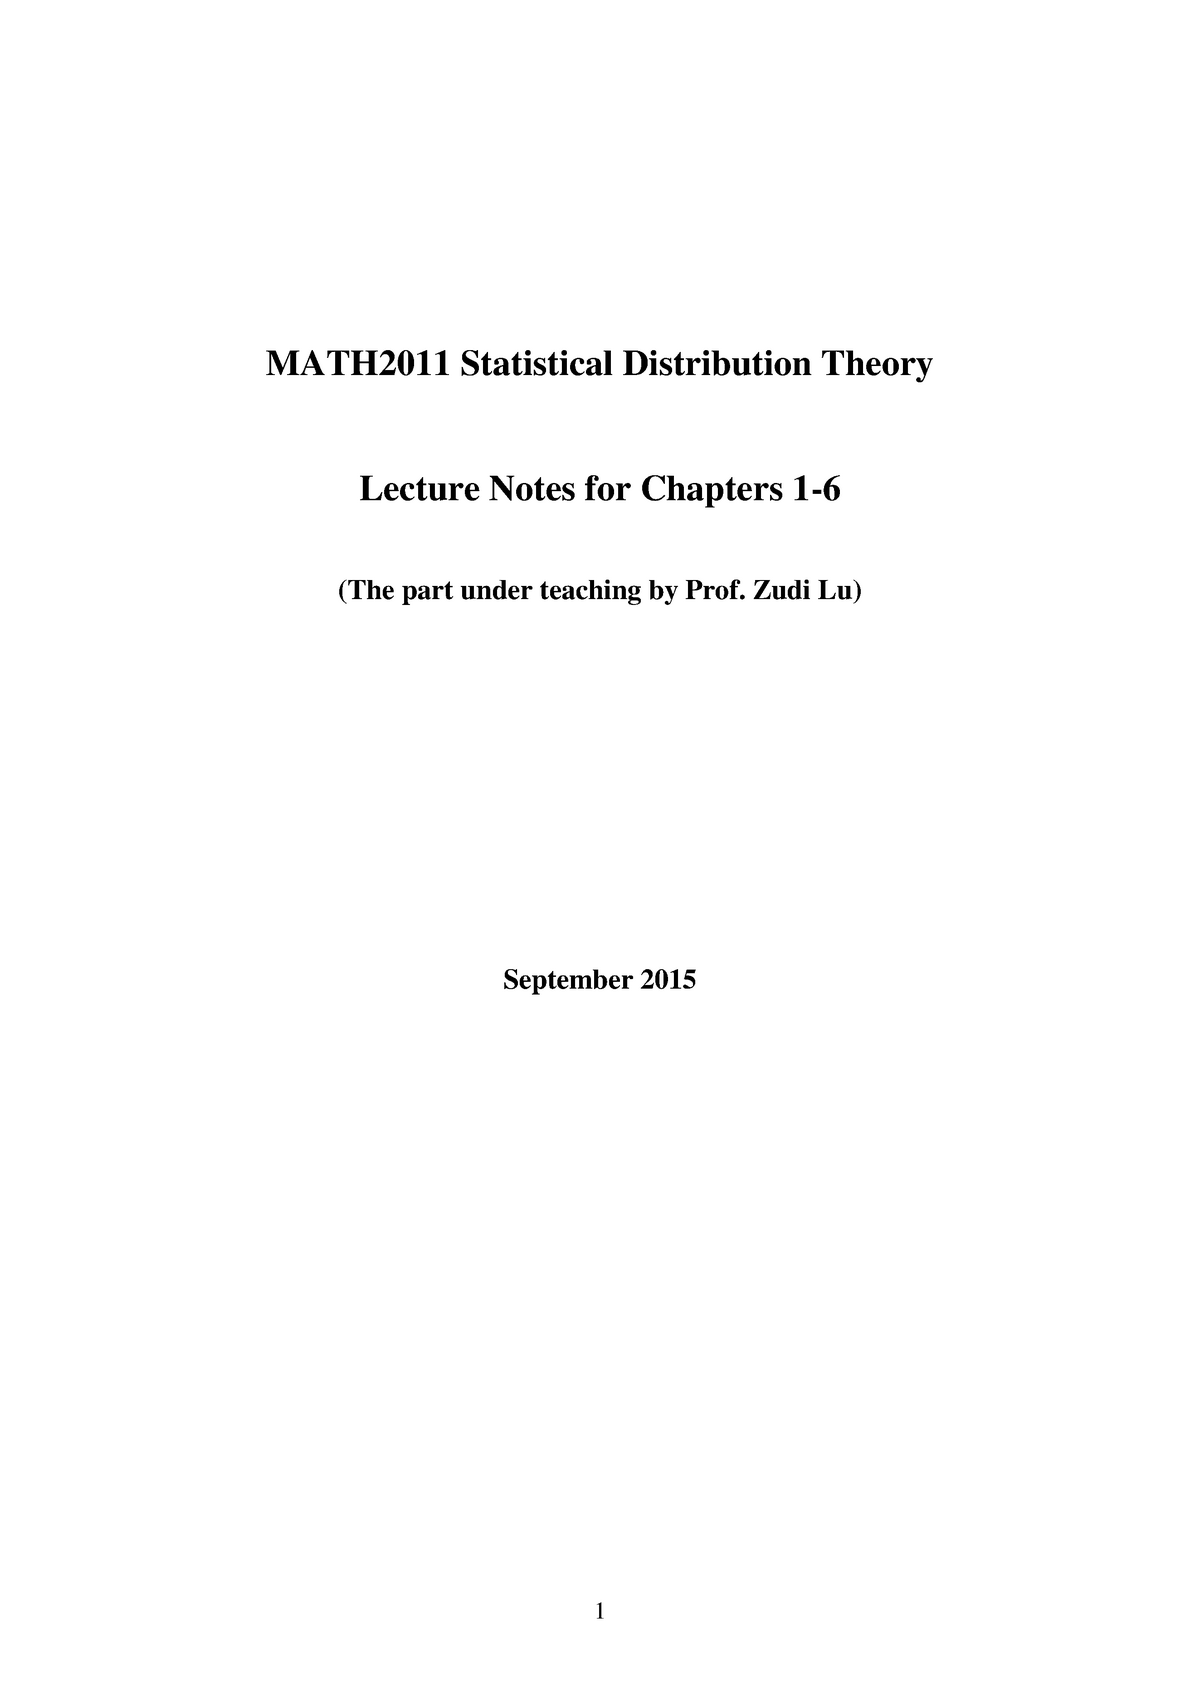 Statistical Distribution Theory - Lecture notes - Chapter 1 - 6